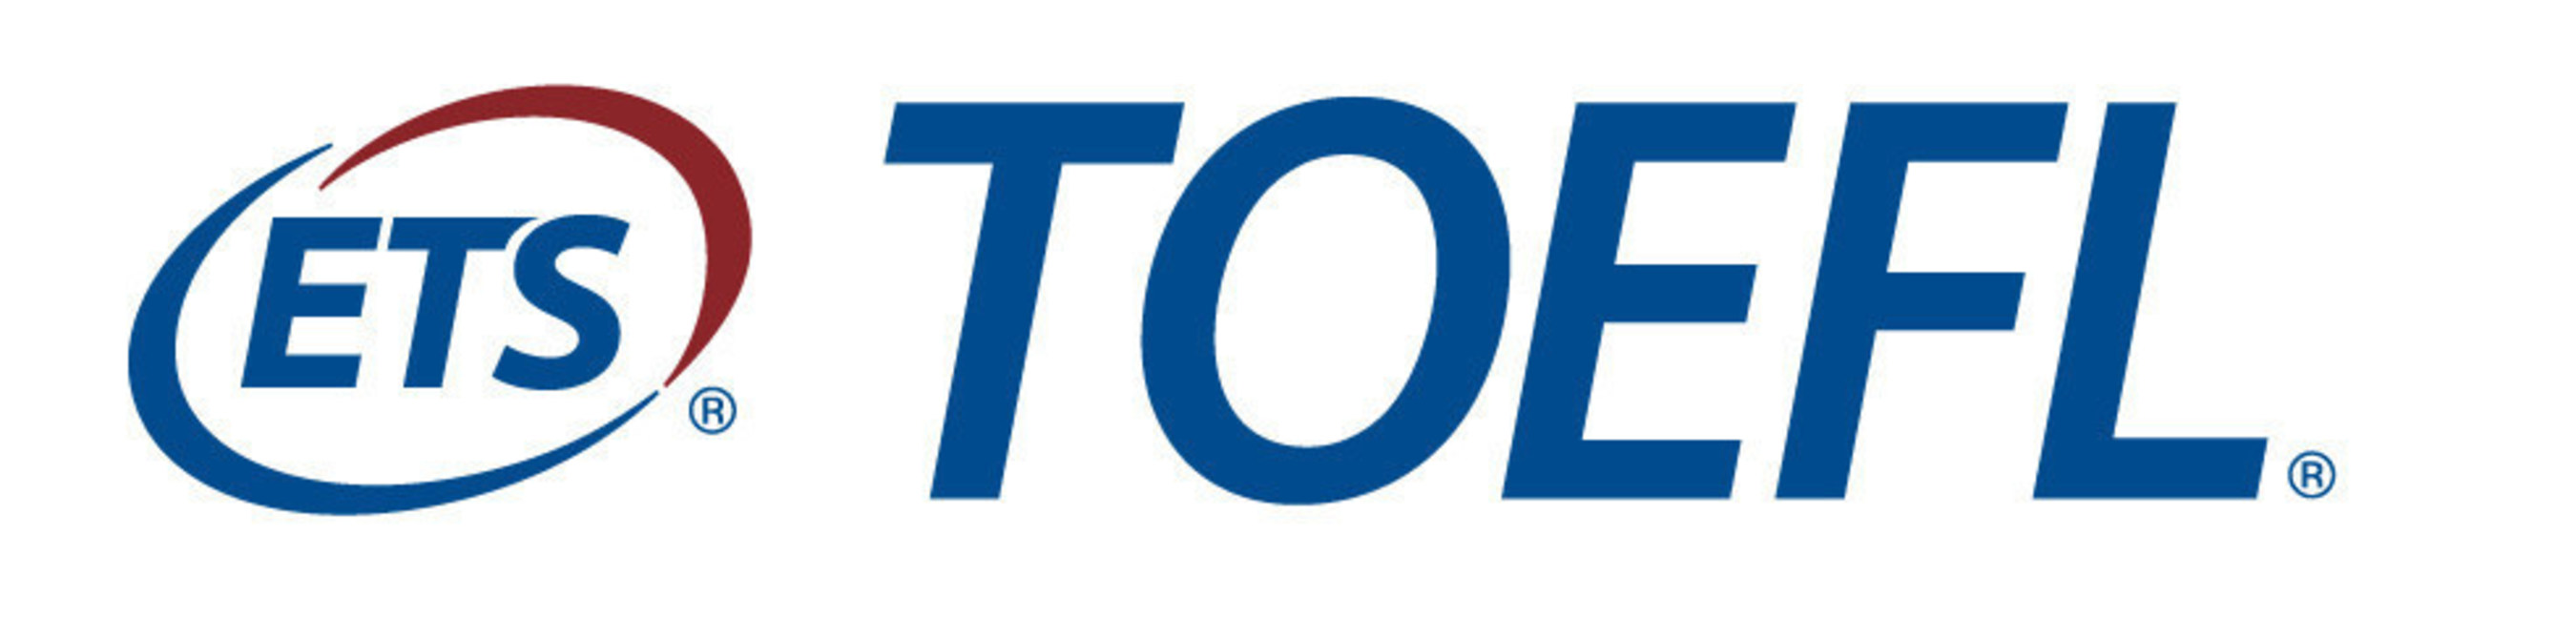 """The TOEFL(R) Program is launching """"TOEFL(R) Test Preparation: The Insider's Guide,"""" the first ever MOOC designed by the creators of the TOEFL(R) iBT test."""